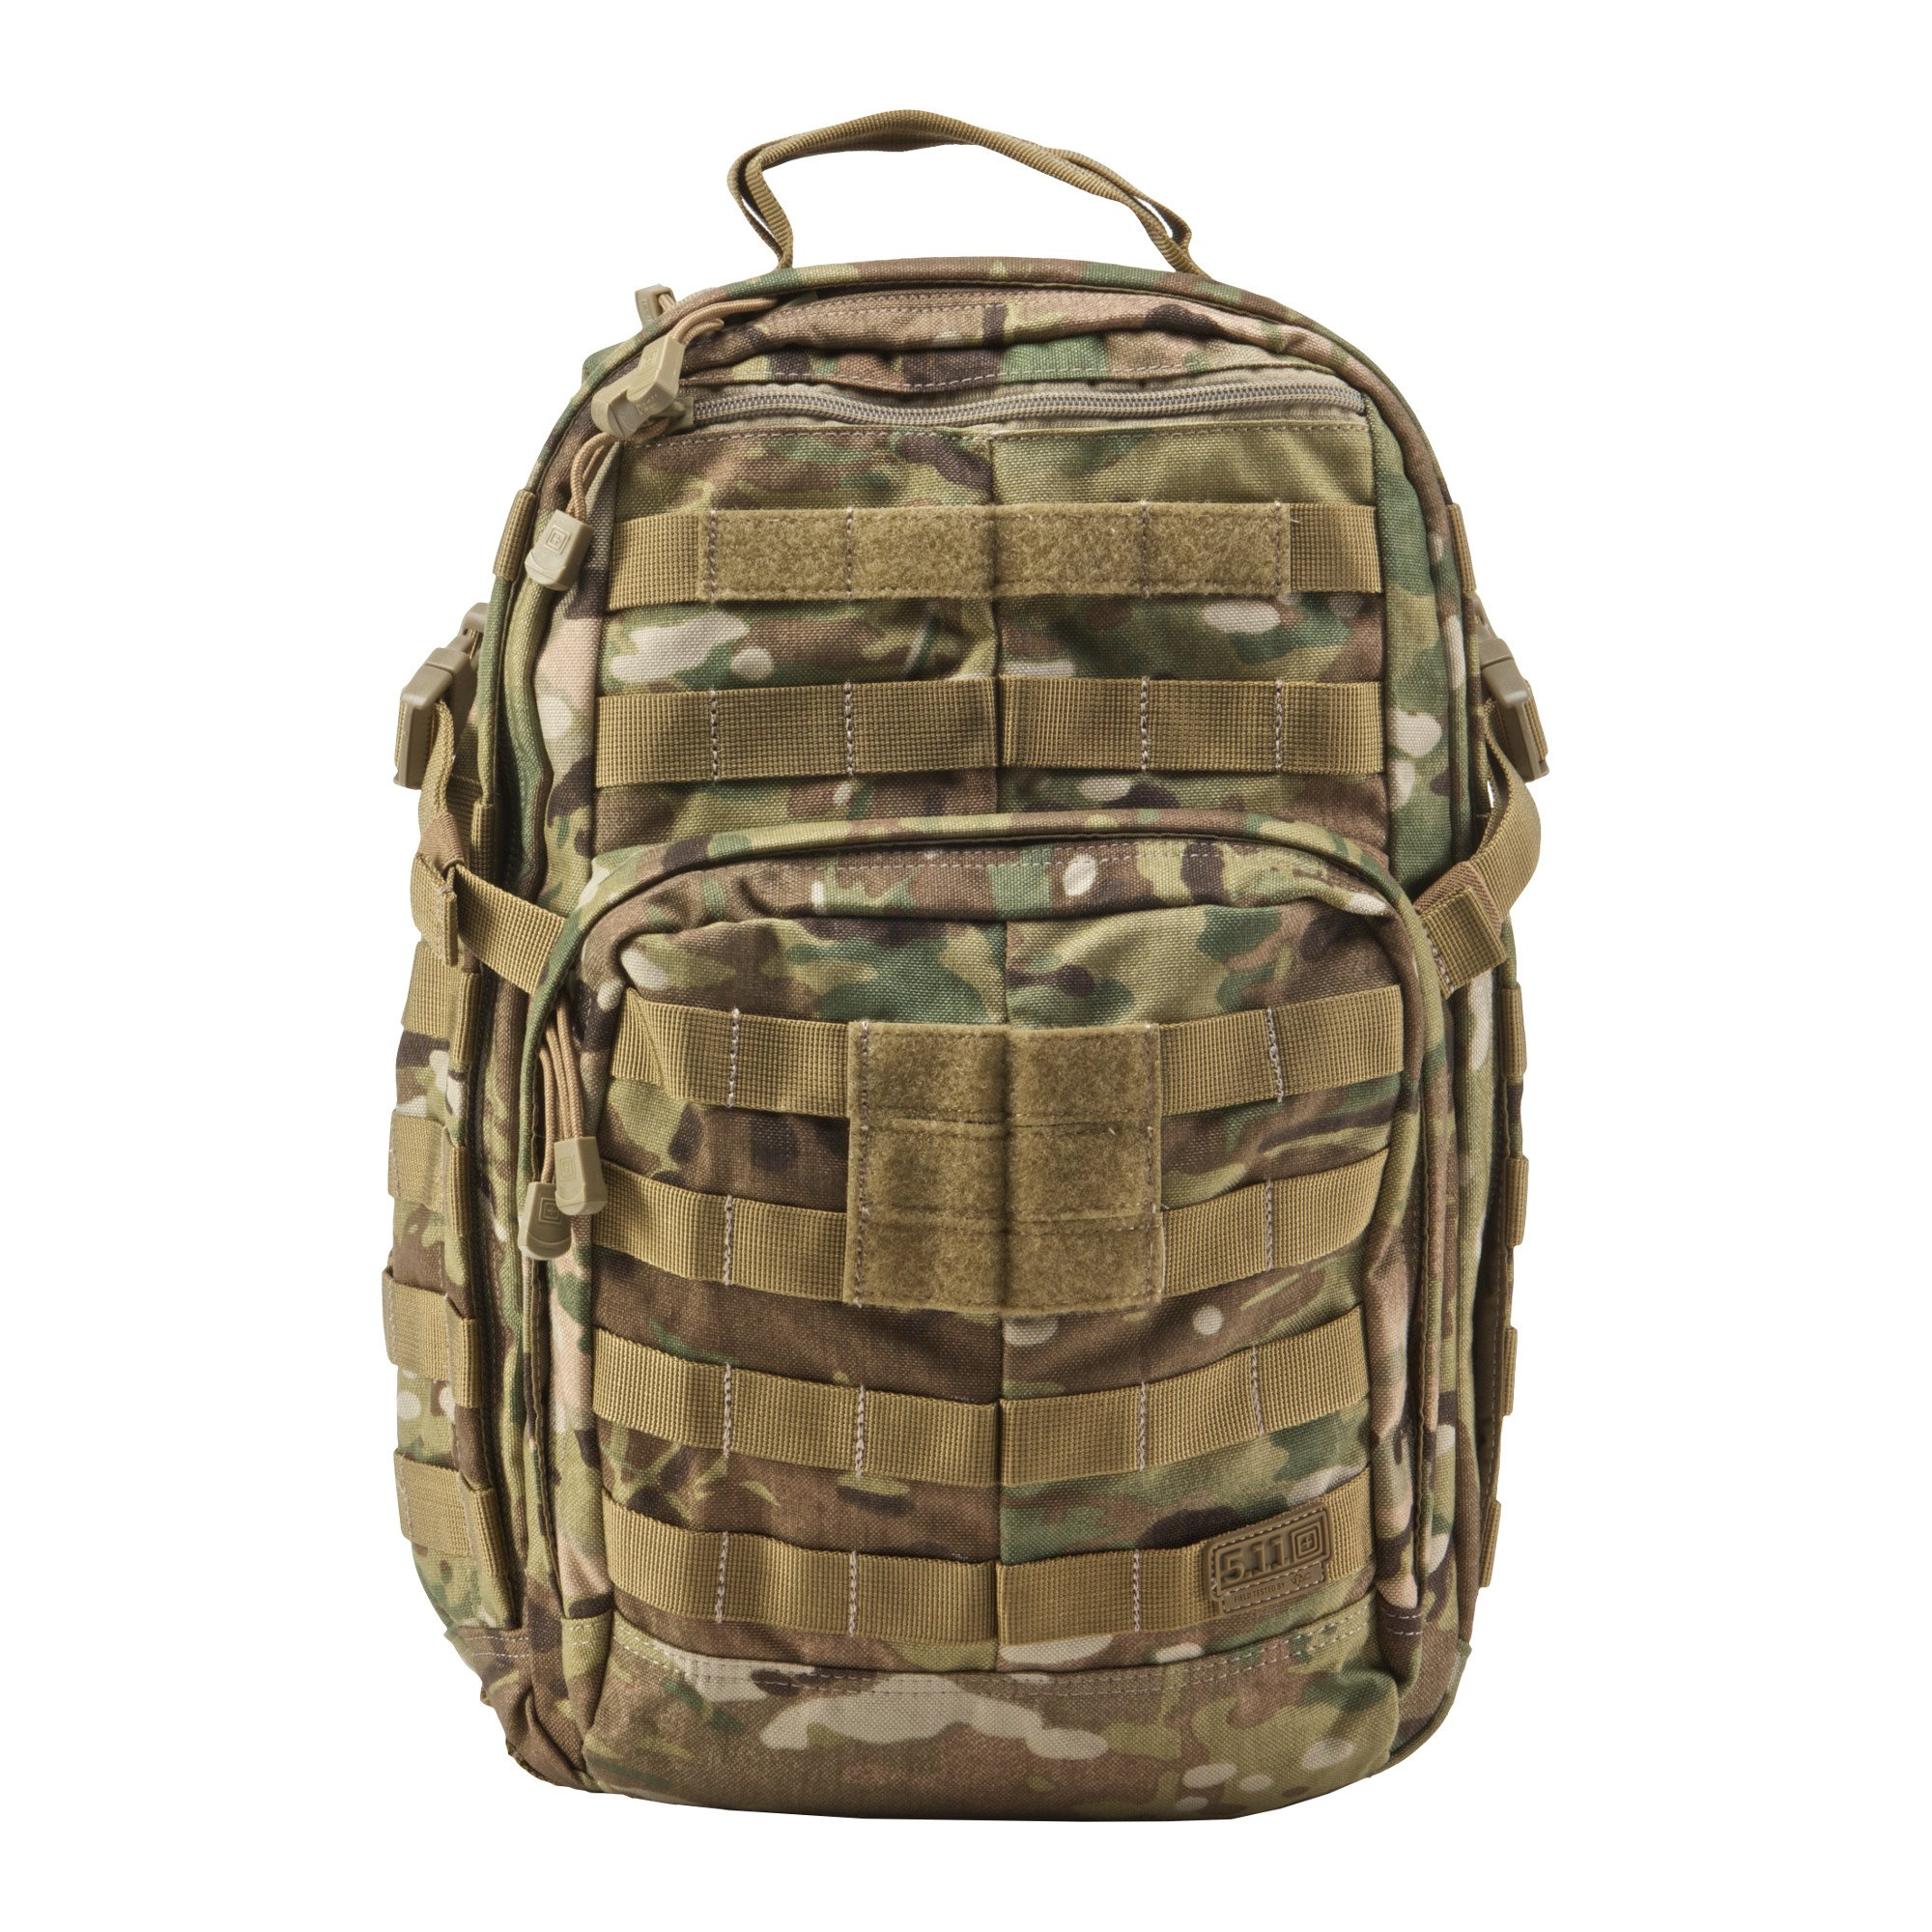 5.11 RUSH12 Tactical Military Assault Molle Backpack, Bug Out Rucksack Bag, Small, Style 56892, Multicam